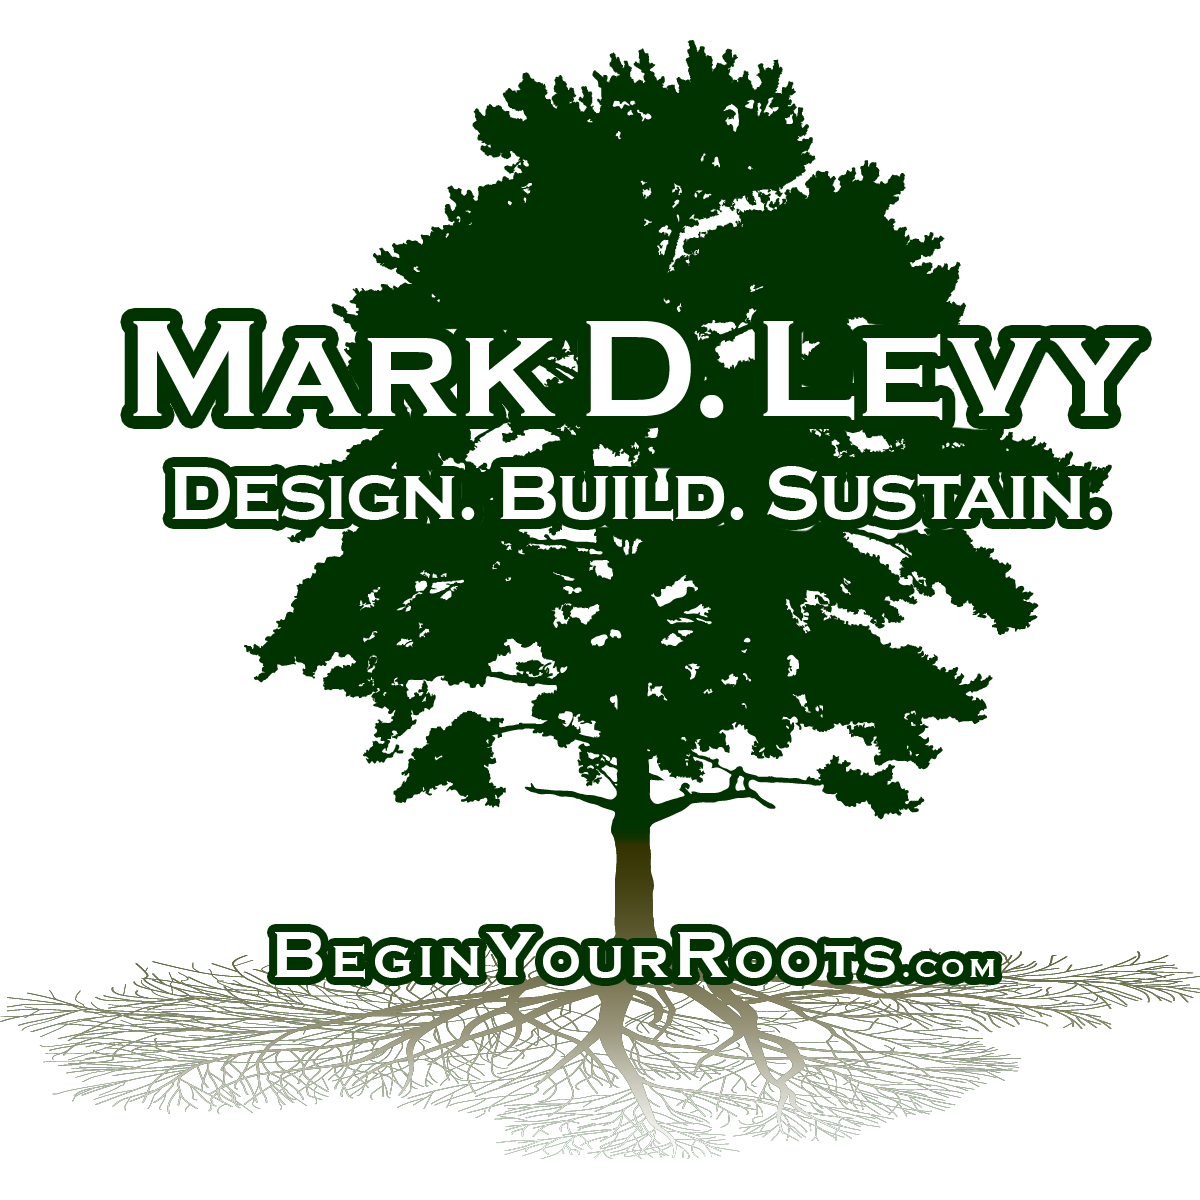 westchester_landscaping_mark_levy_irrigation_fairfield_plant_health_care_design.jpg